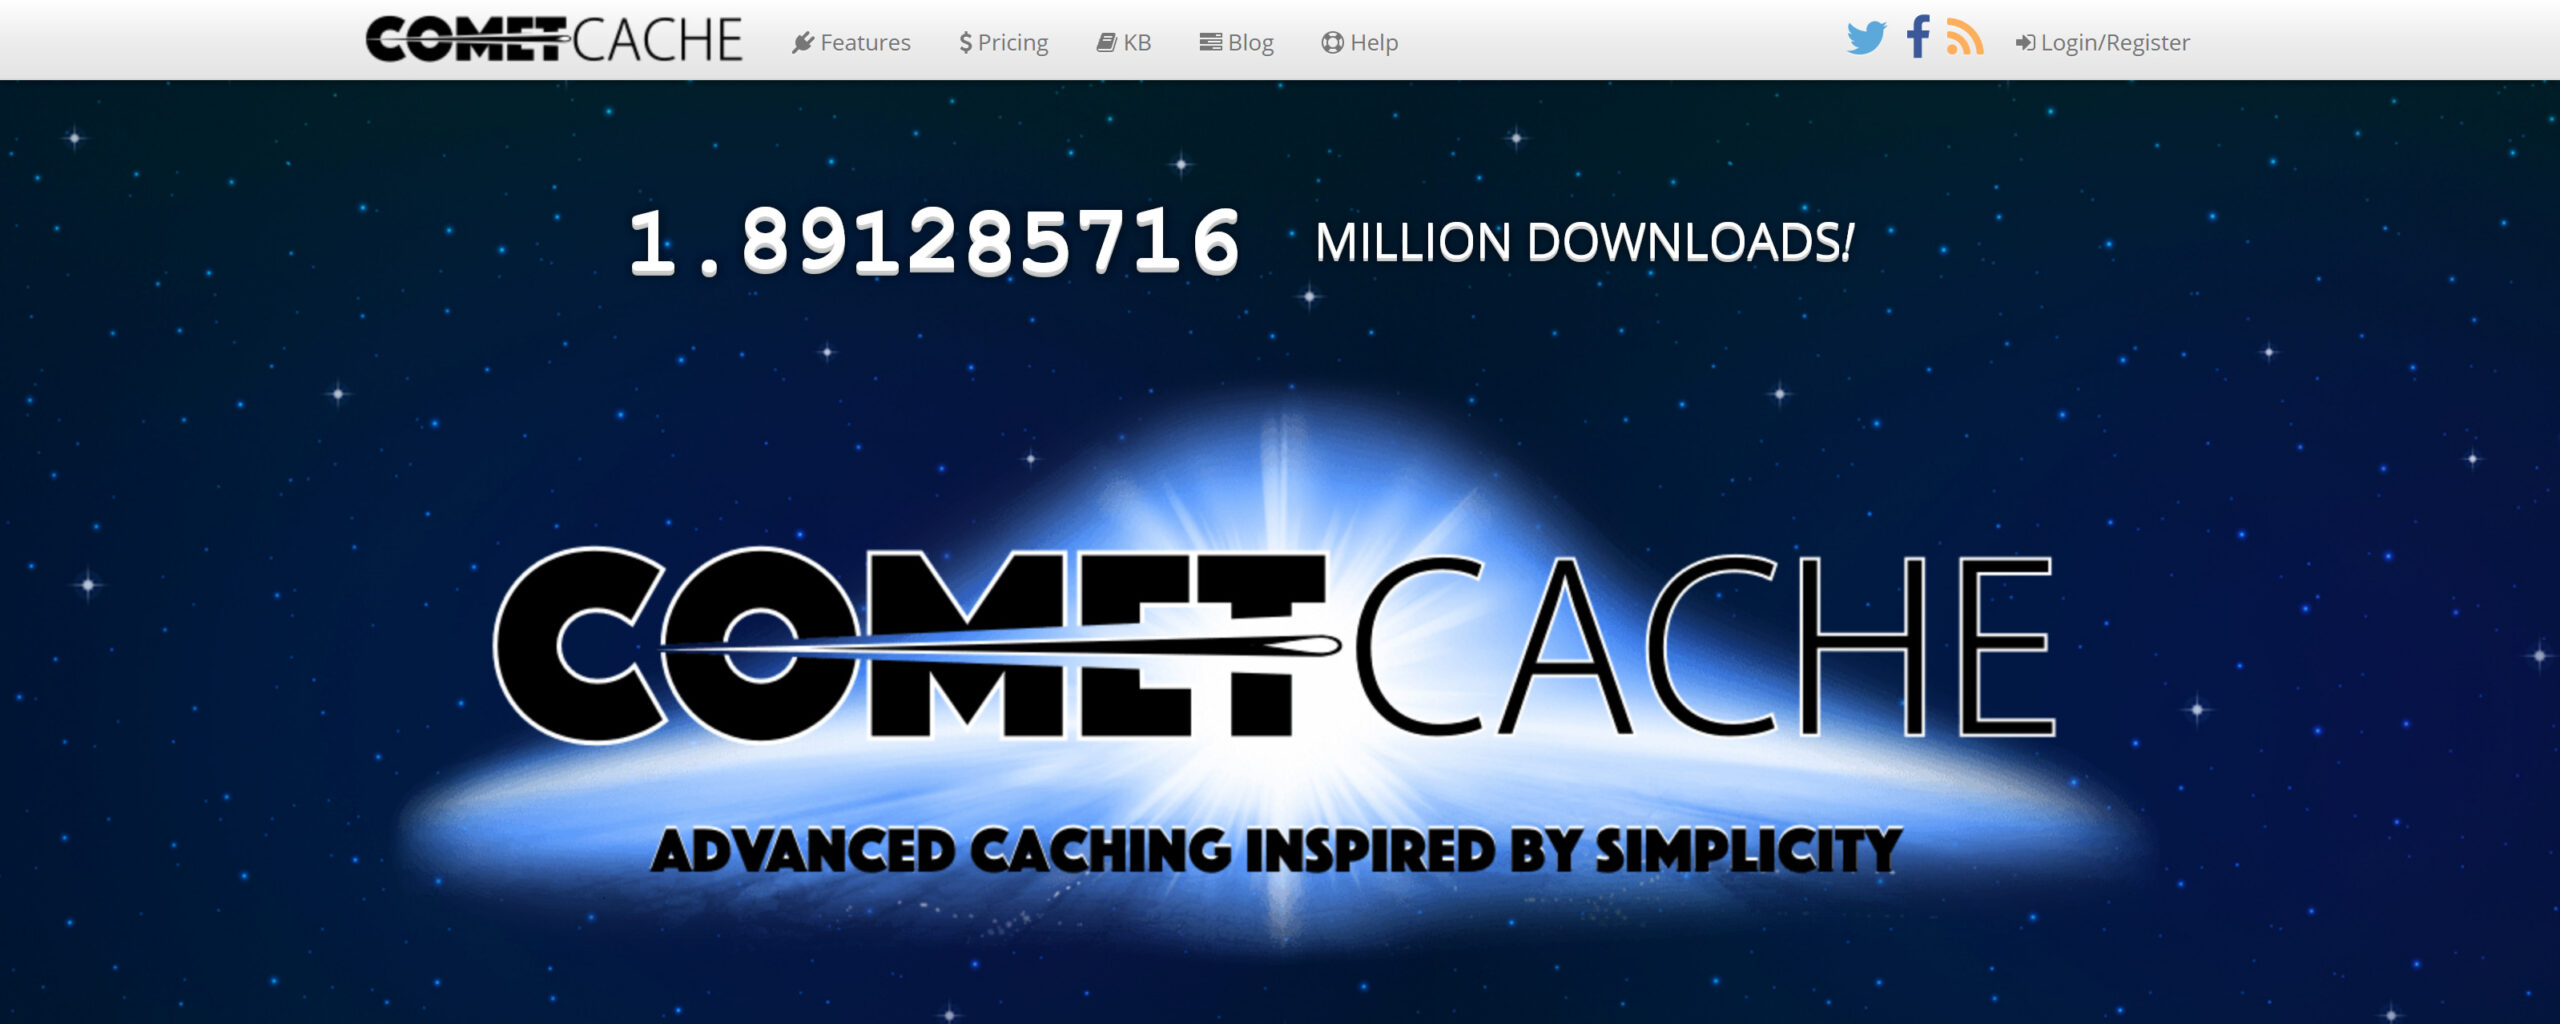 Comet Cache Pro 170220 – An advanced WordPress cache plugin inspired by simplicity